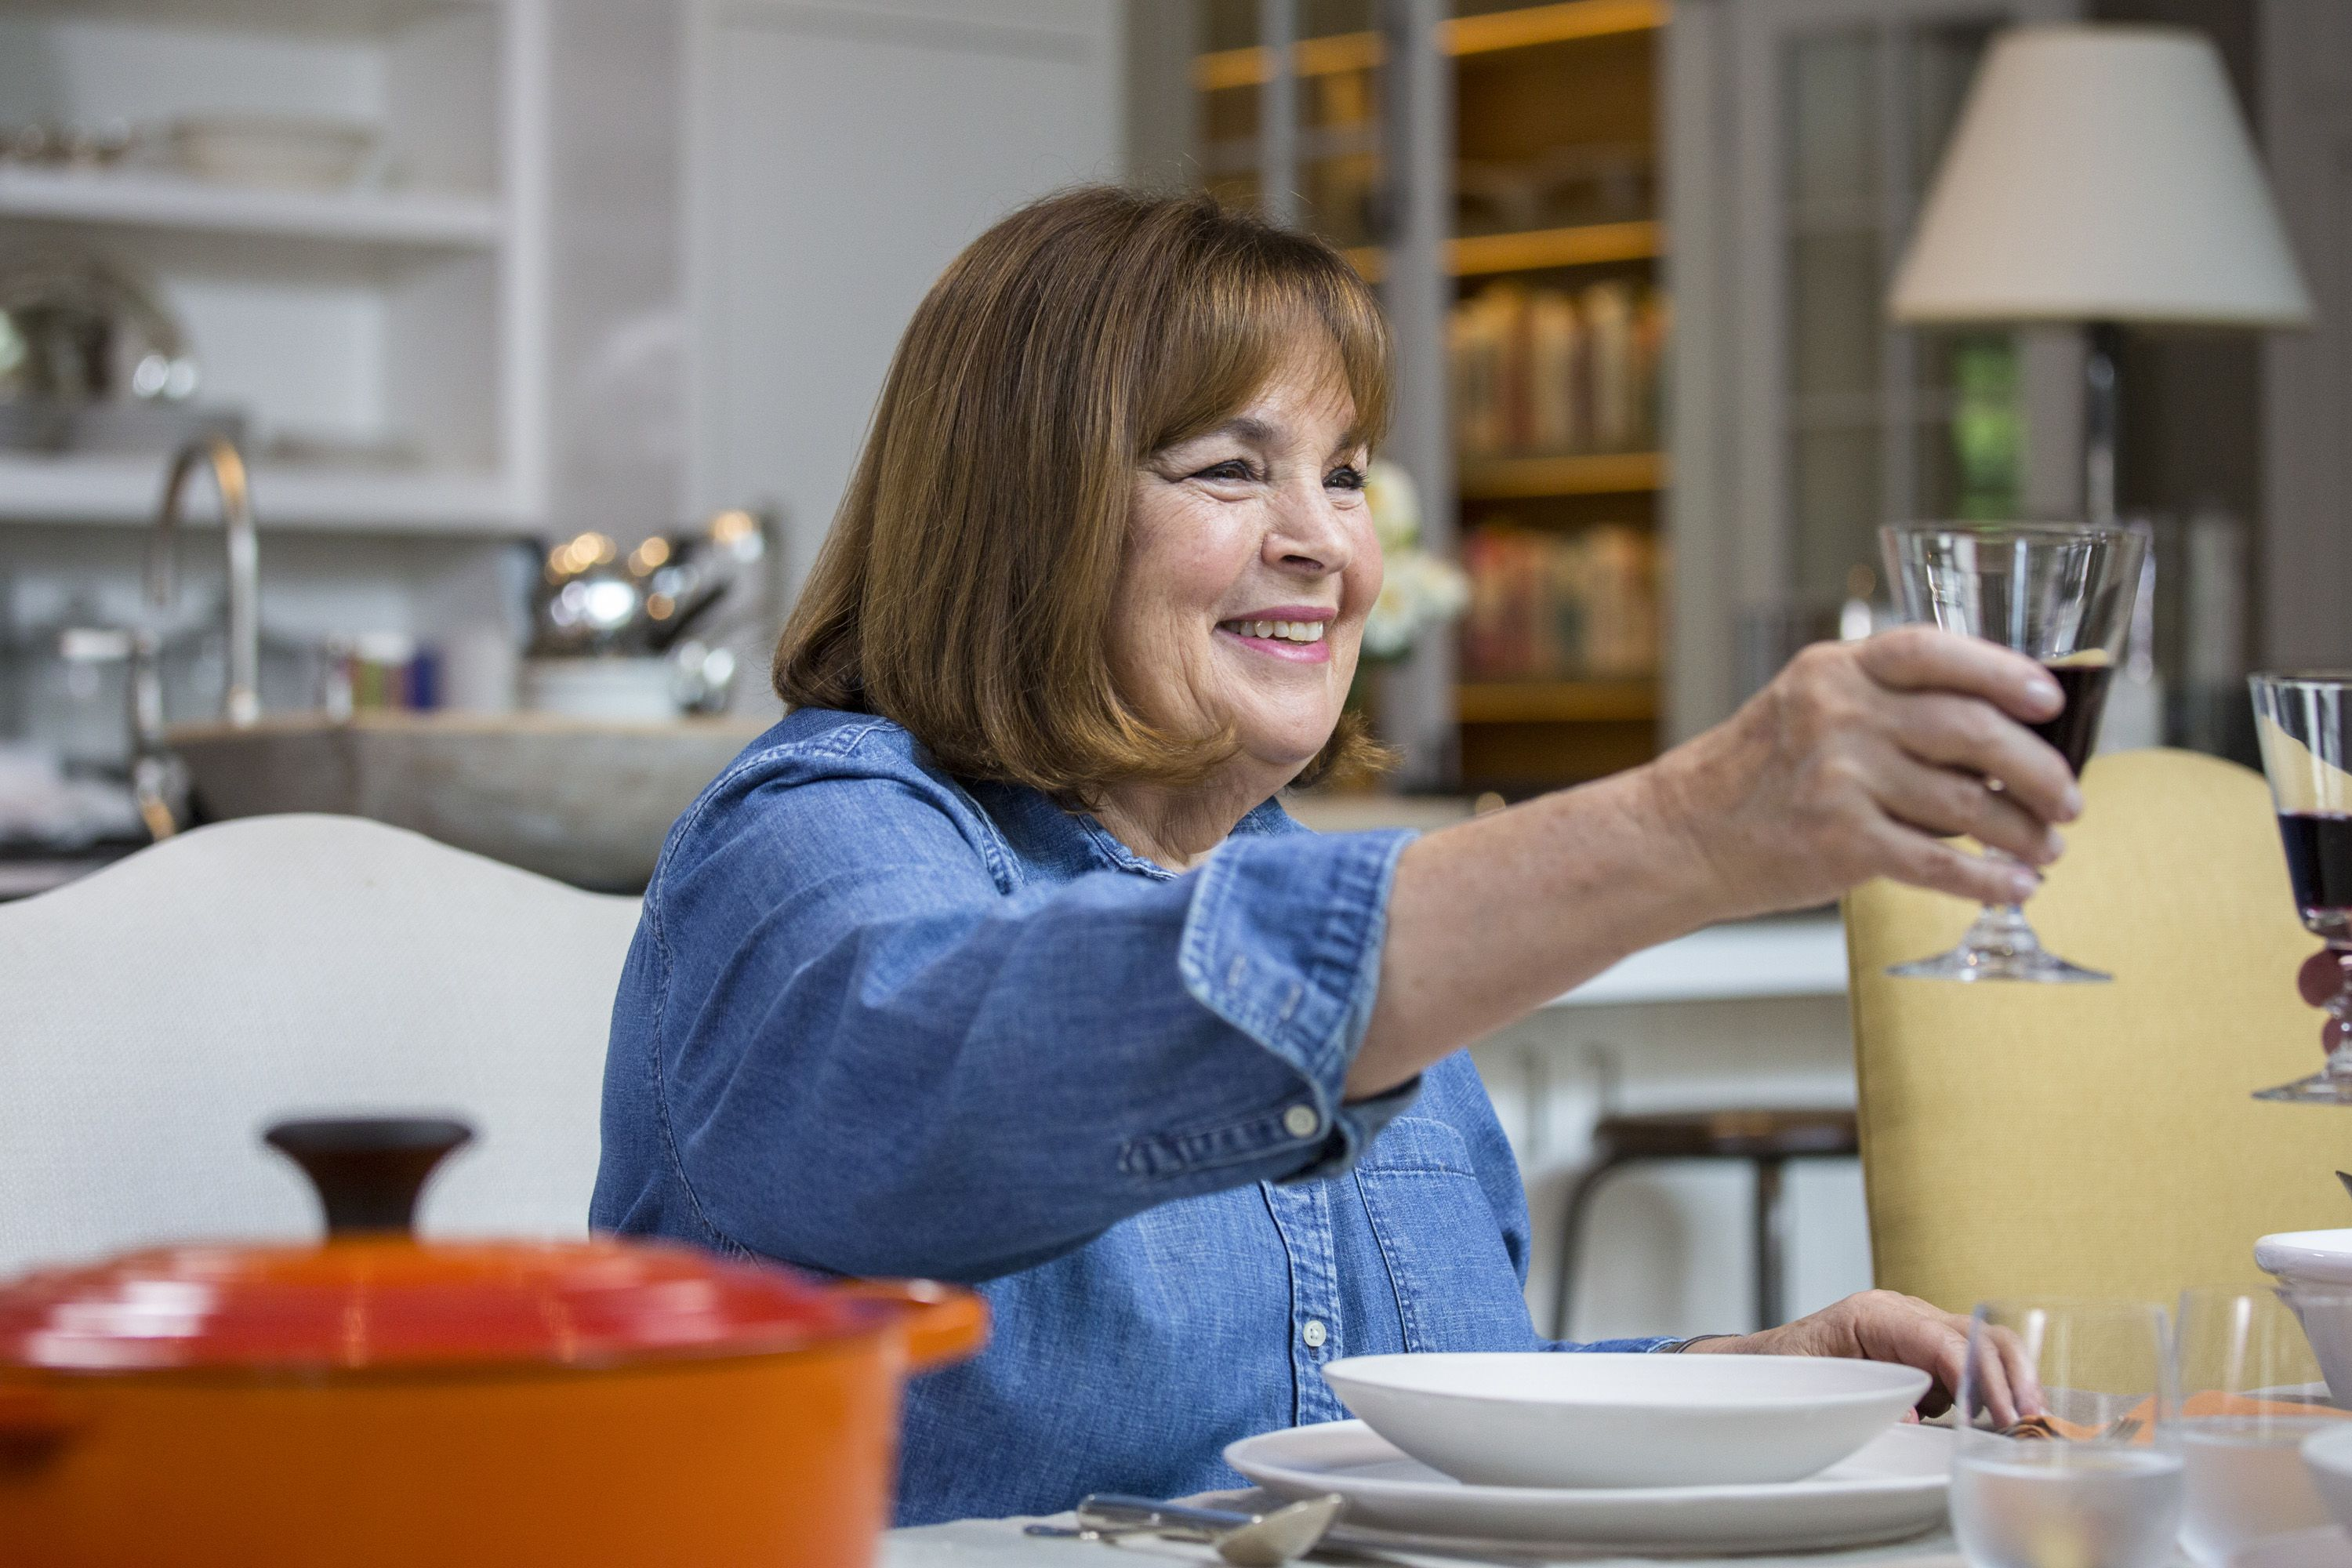 Ina Garten Bars Ina Garten Net Worth 2019 How Much Does The Barefoot Contessa Make